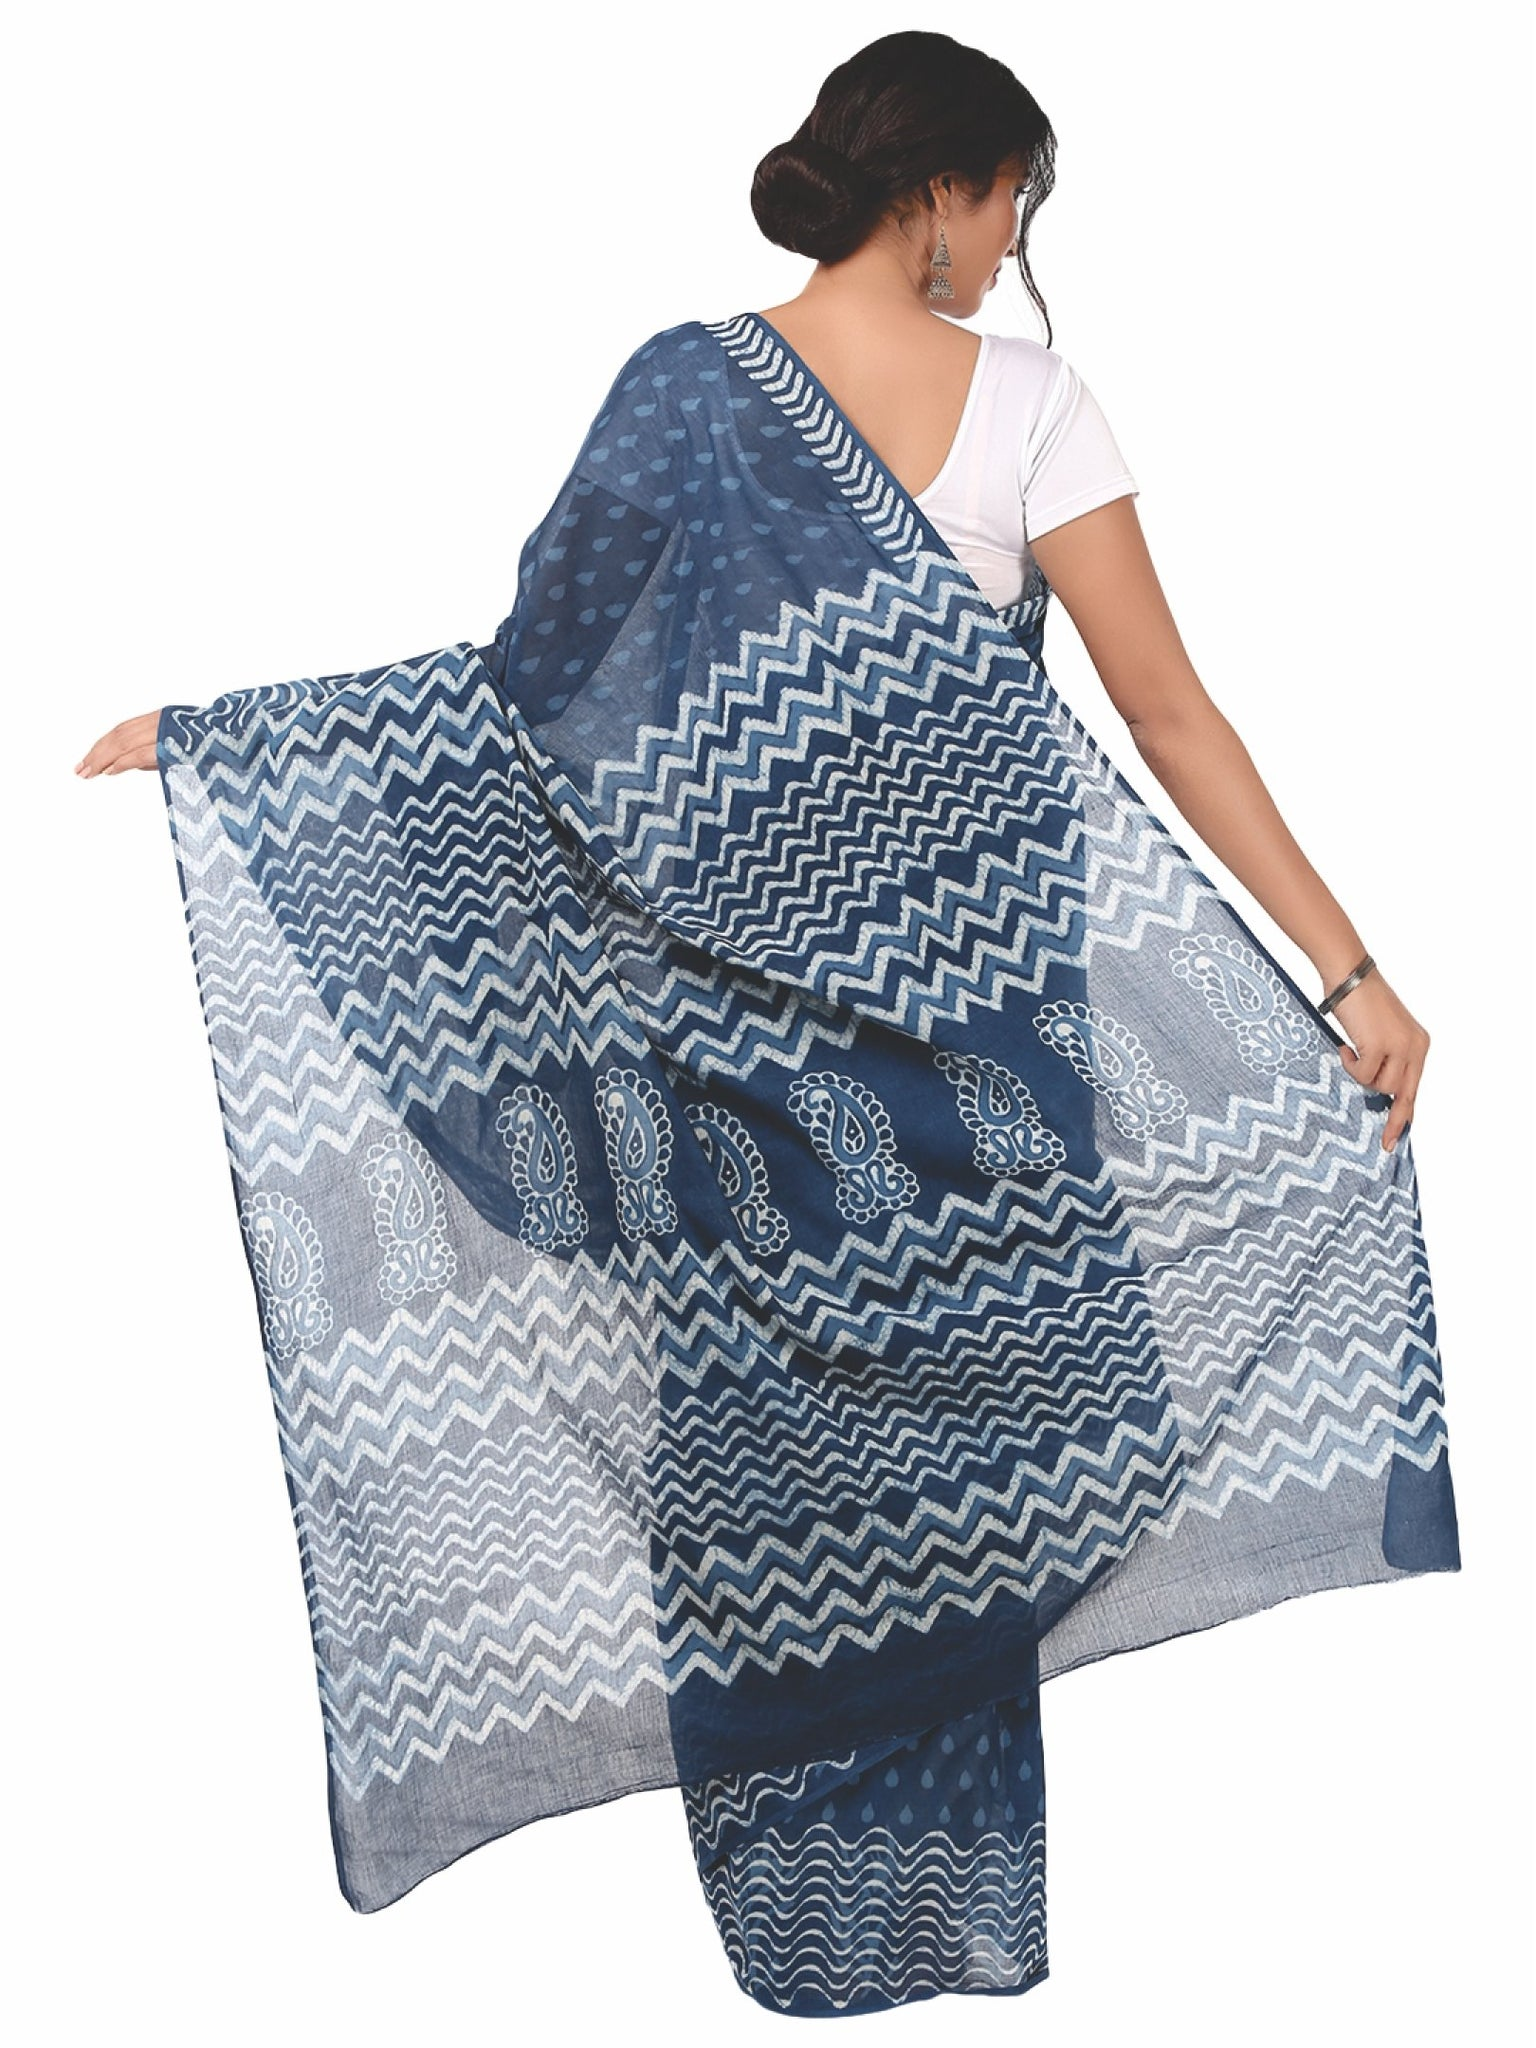 Indigo Dabu Hand Block Print Handcrafted Cotton Saree-Saree-Kalakari India-BAPASA0009-Cotton, Dabu, Geographical Indication, Hand Blocks, Hand Crafted, Heritage Prints, Indigo, Natural Dyes, Sarees, Sustainable Fabrics-[Linen,Ethnic,wear,Fashionista,Handloom,Handicraft,Indigo,blockprint,block,print,Cotton,Chanderi,Blue, latest,classy,party,bollywood,trendy,summer,style,traditional,formal,elegant,unique,style,hand,block,print, dabu,booti,gift,present,glamorous,affordable,collectible,Sari,Saree,pr